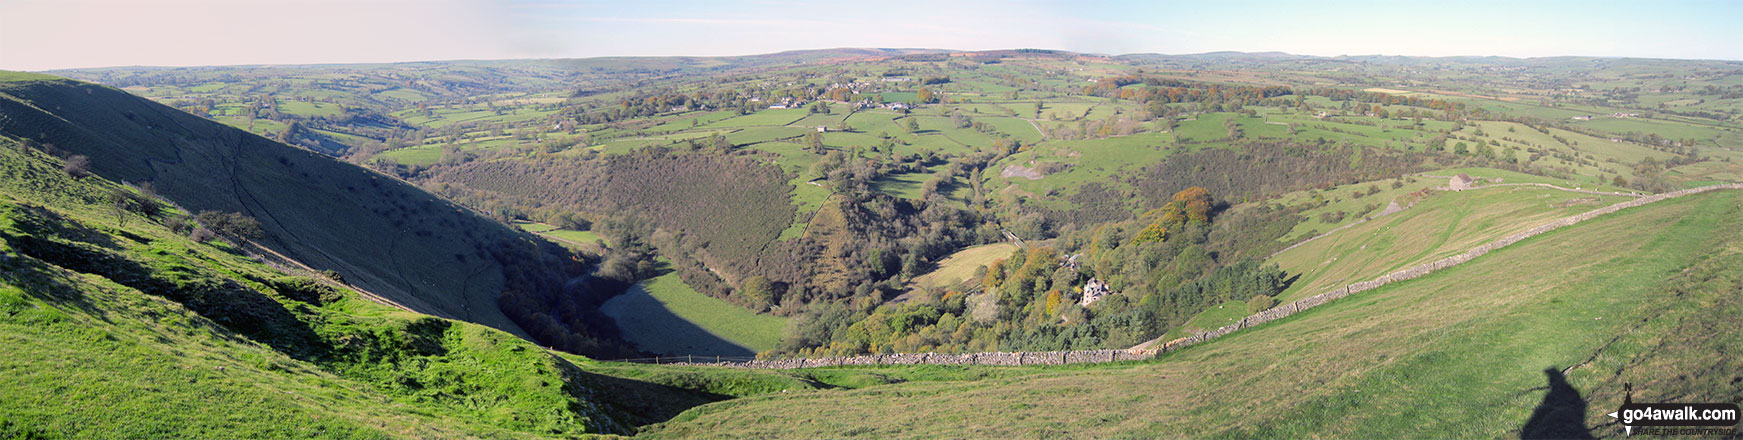 Dale Bridge, Ecton and the Manifold Way from Ecton Hill